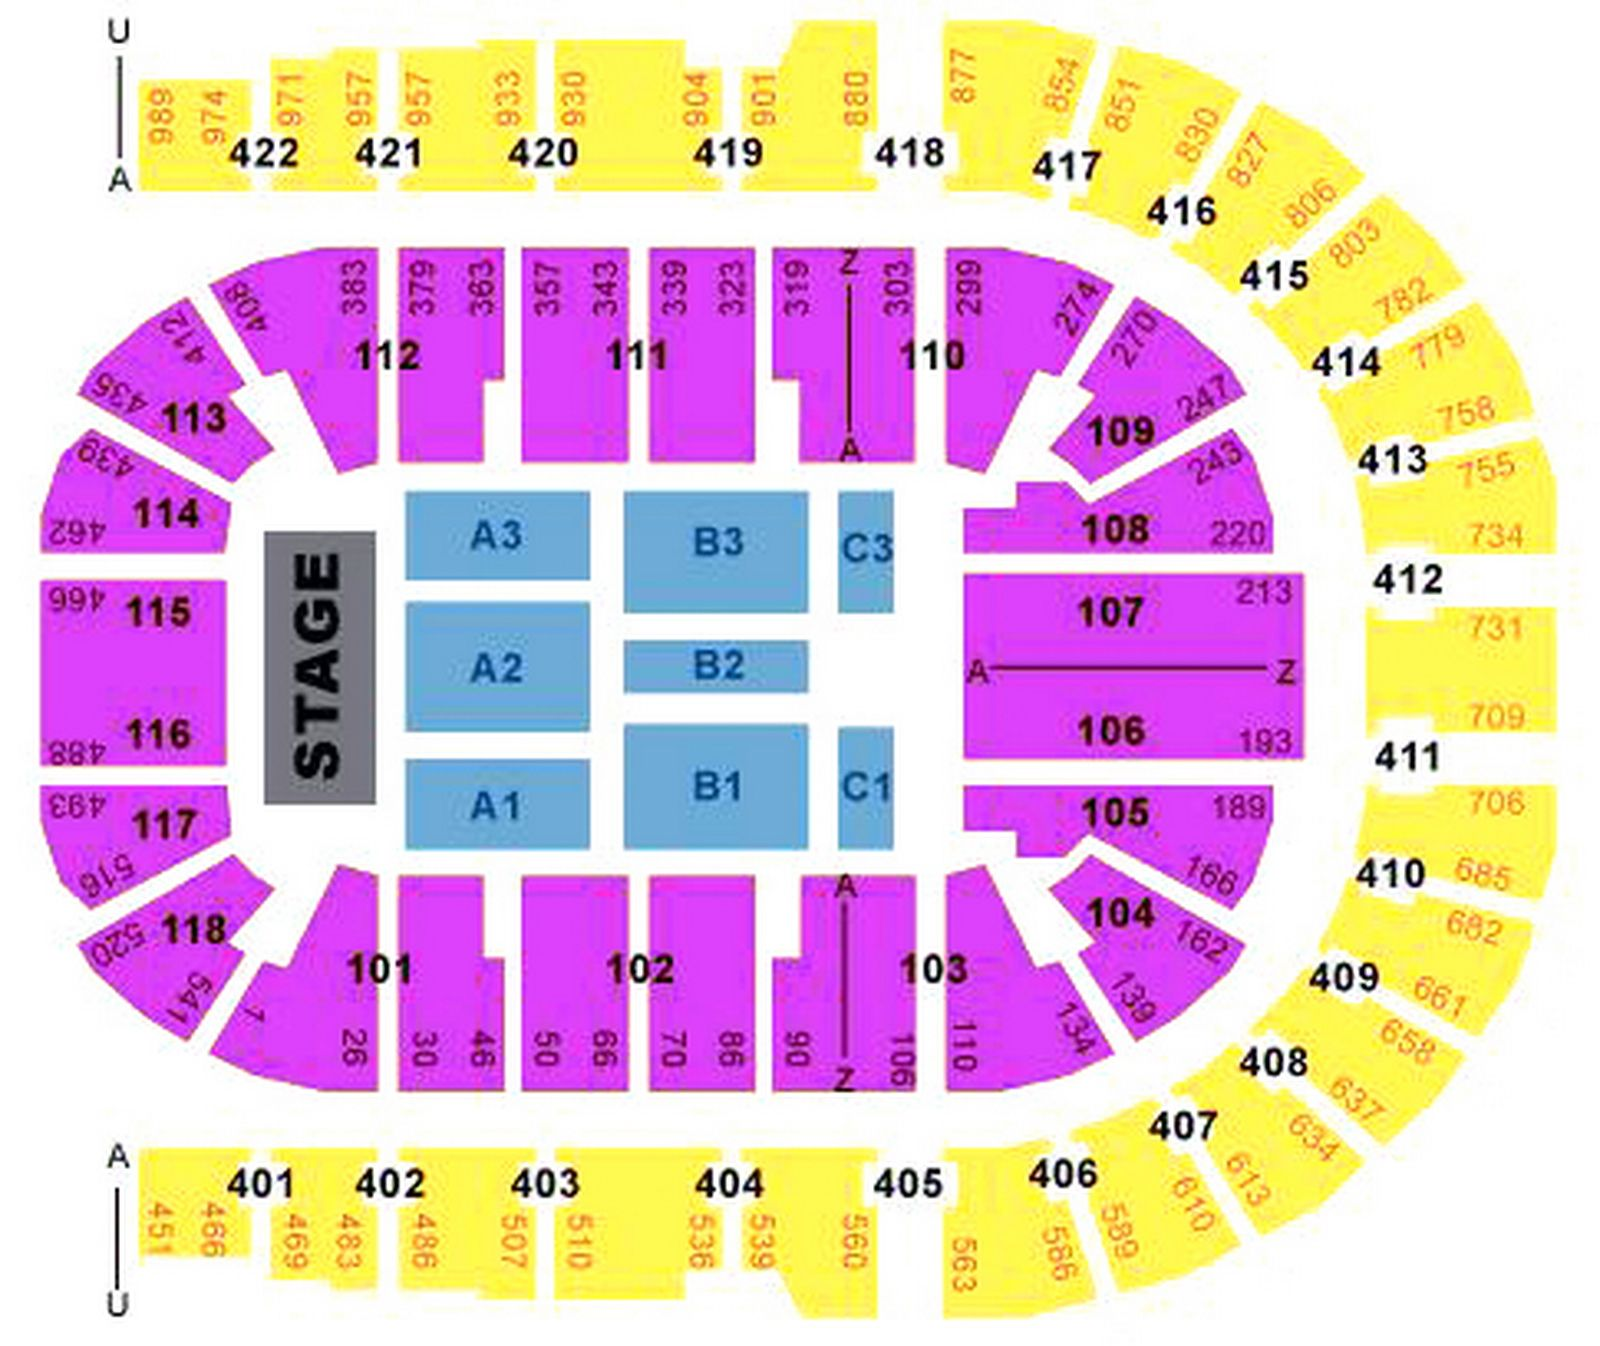 Up To Date Barclaycard Arena Hamburg Seating Plan Barclaycard Arena Hamburg In 2020 Seating Plan How To Plan The Incredibles